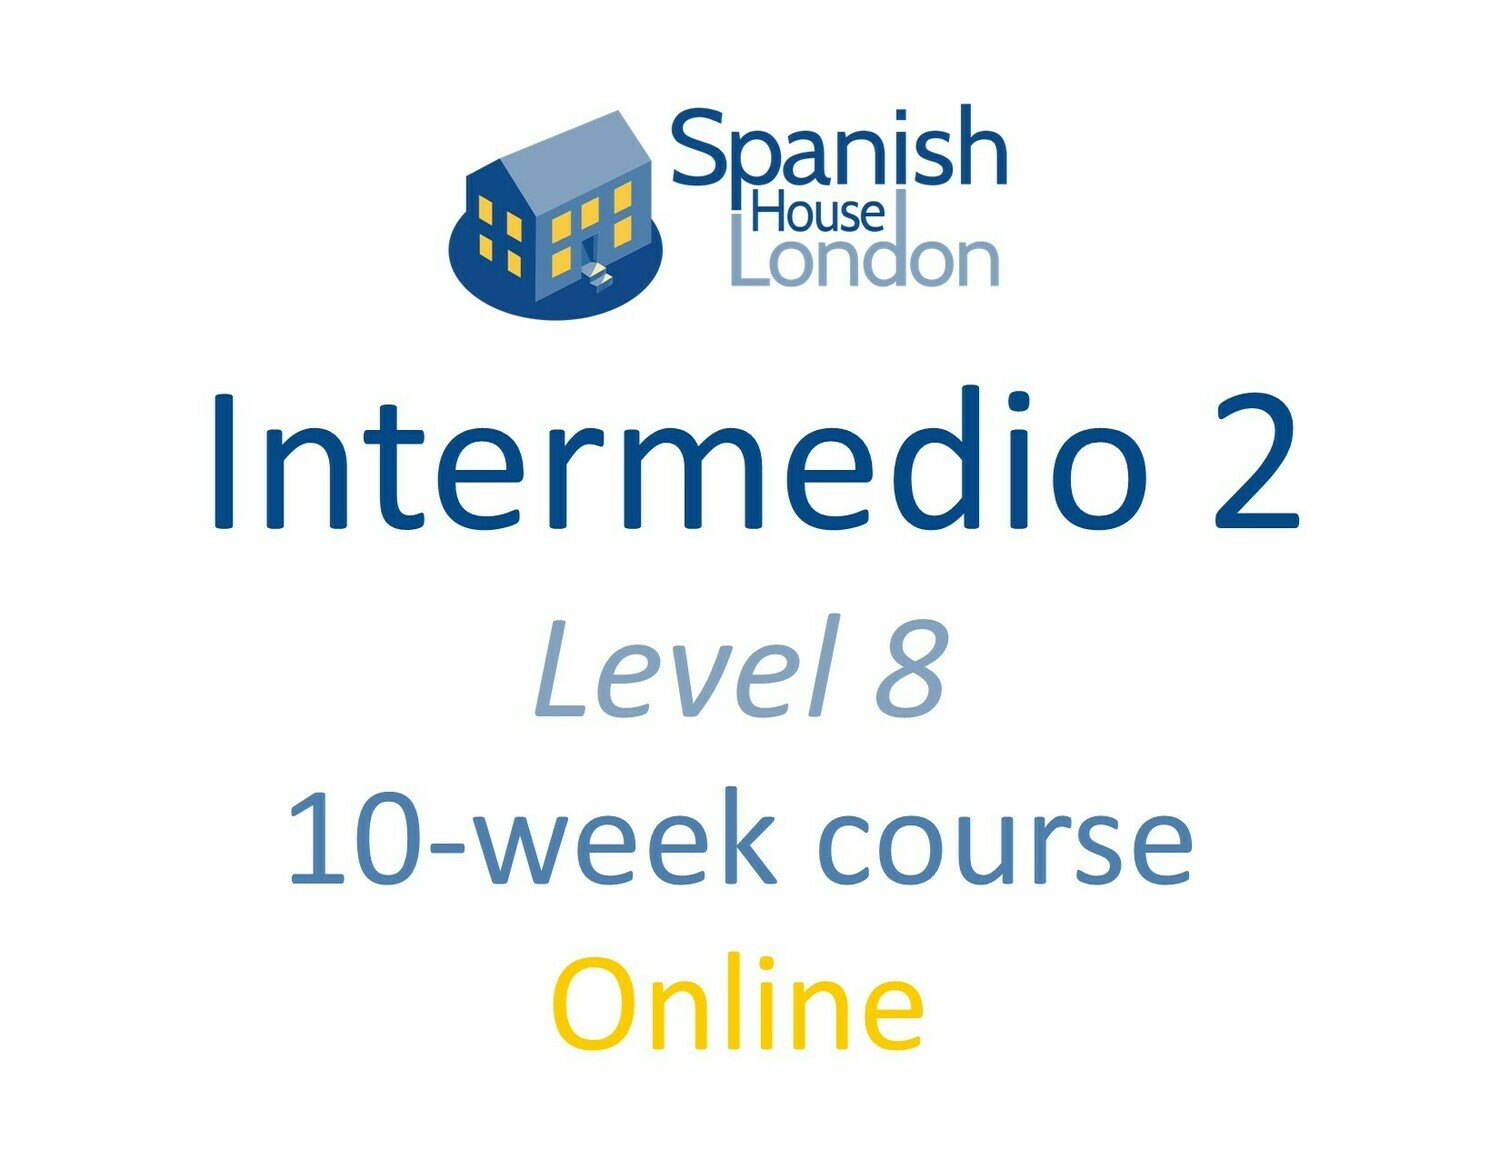 Intermedio 2 Course starting on 22nd June at 6pm